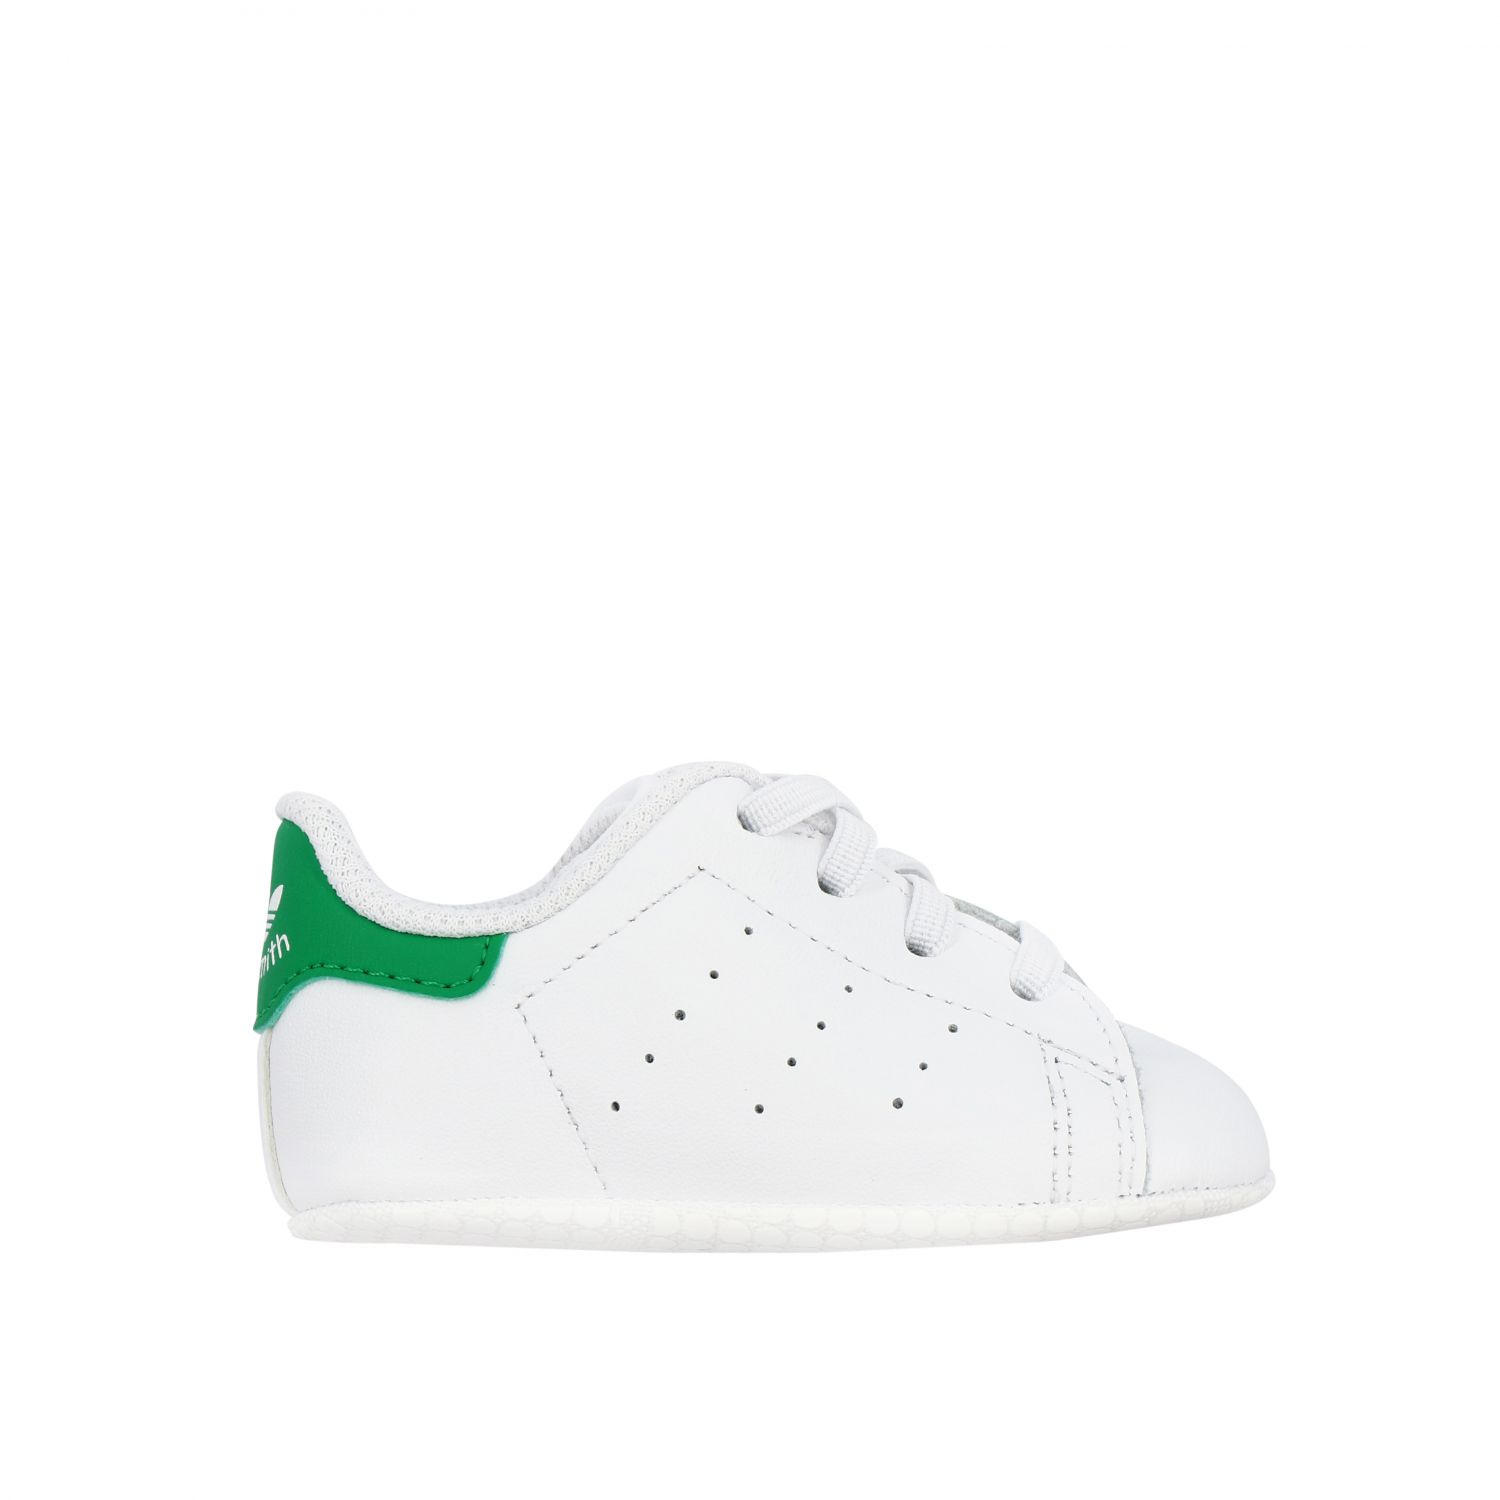 Shoes Adidas Originals: Stan smith Crib Adidas Originals leather sneakers white 1